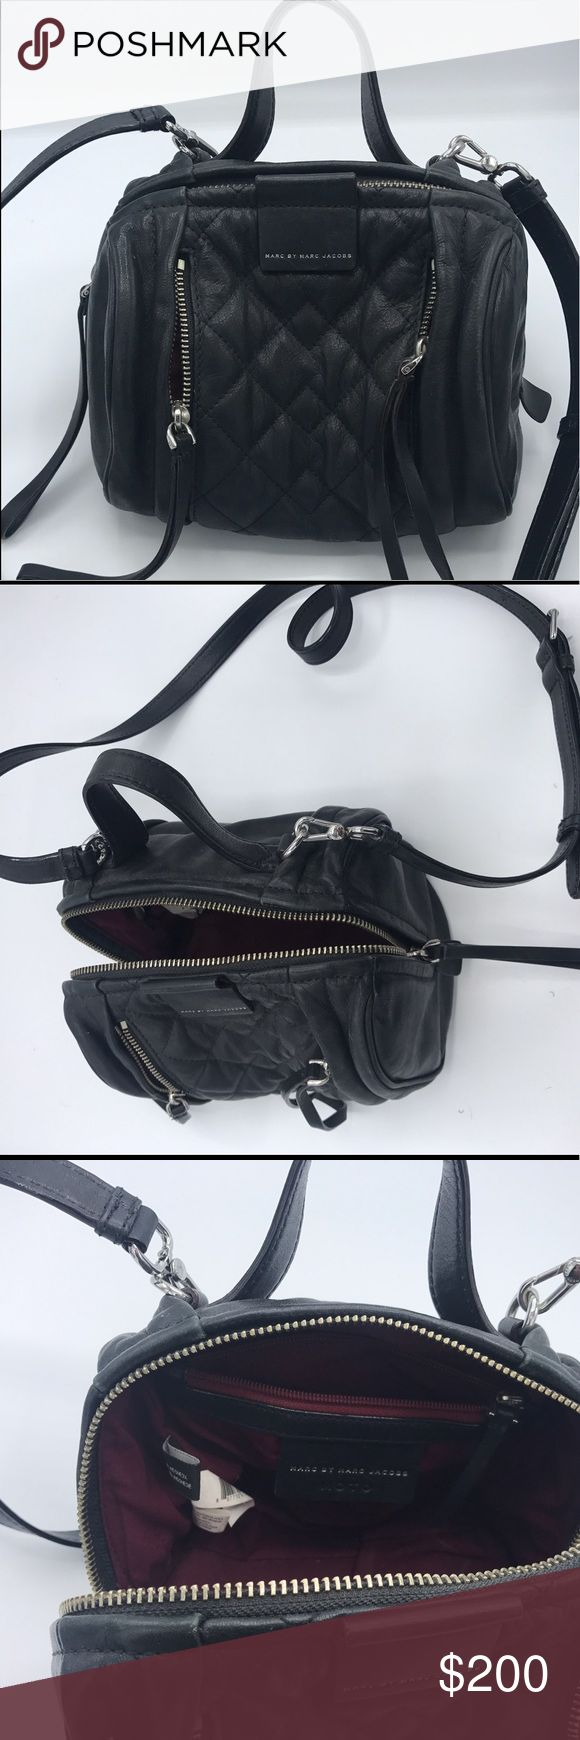 Marc by marc jacobs black purse In a real good condition marc jacobs black purse Marc By Marc Jacobs Bags Crossbody Bags